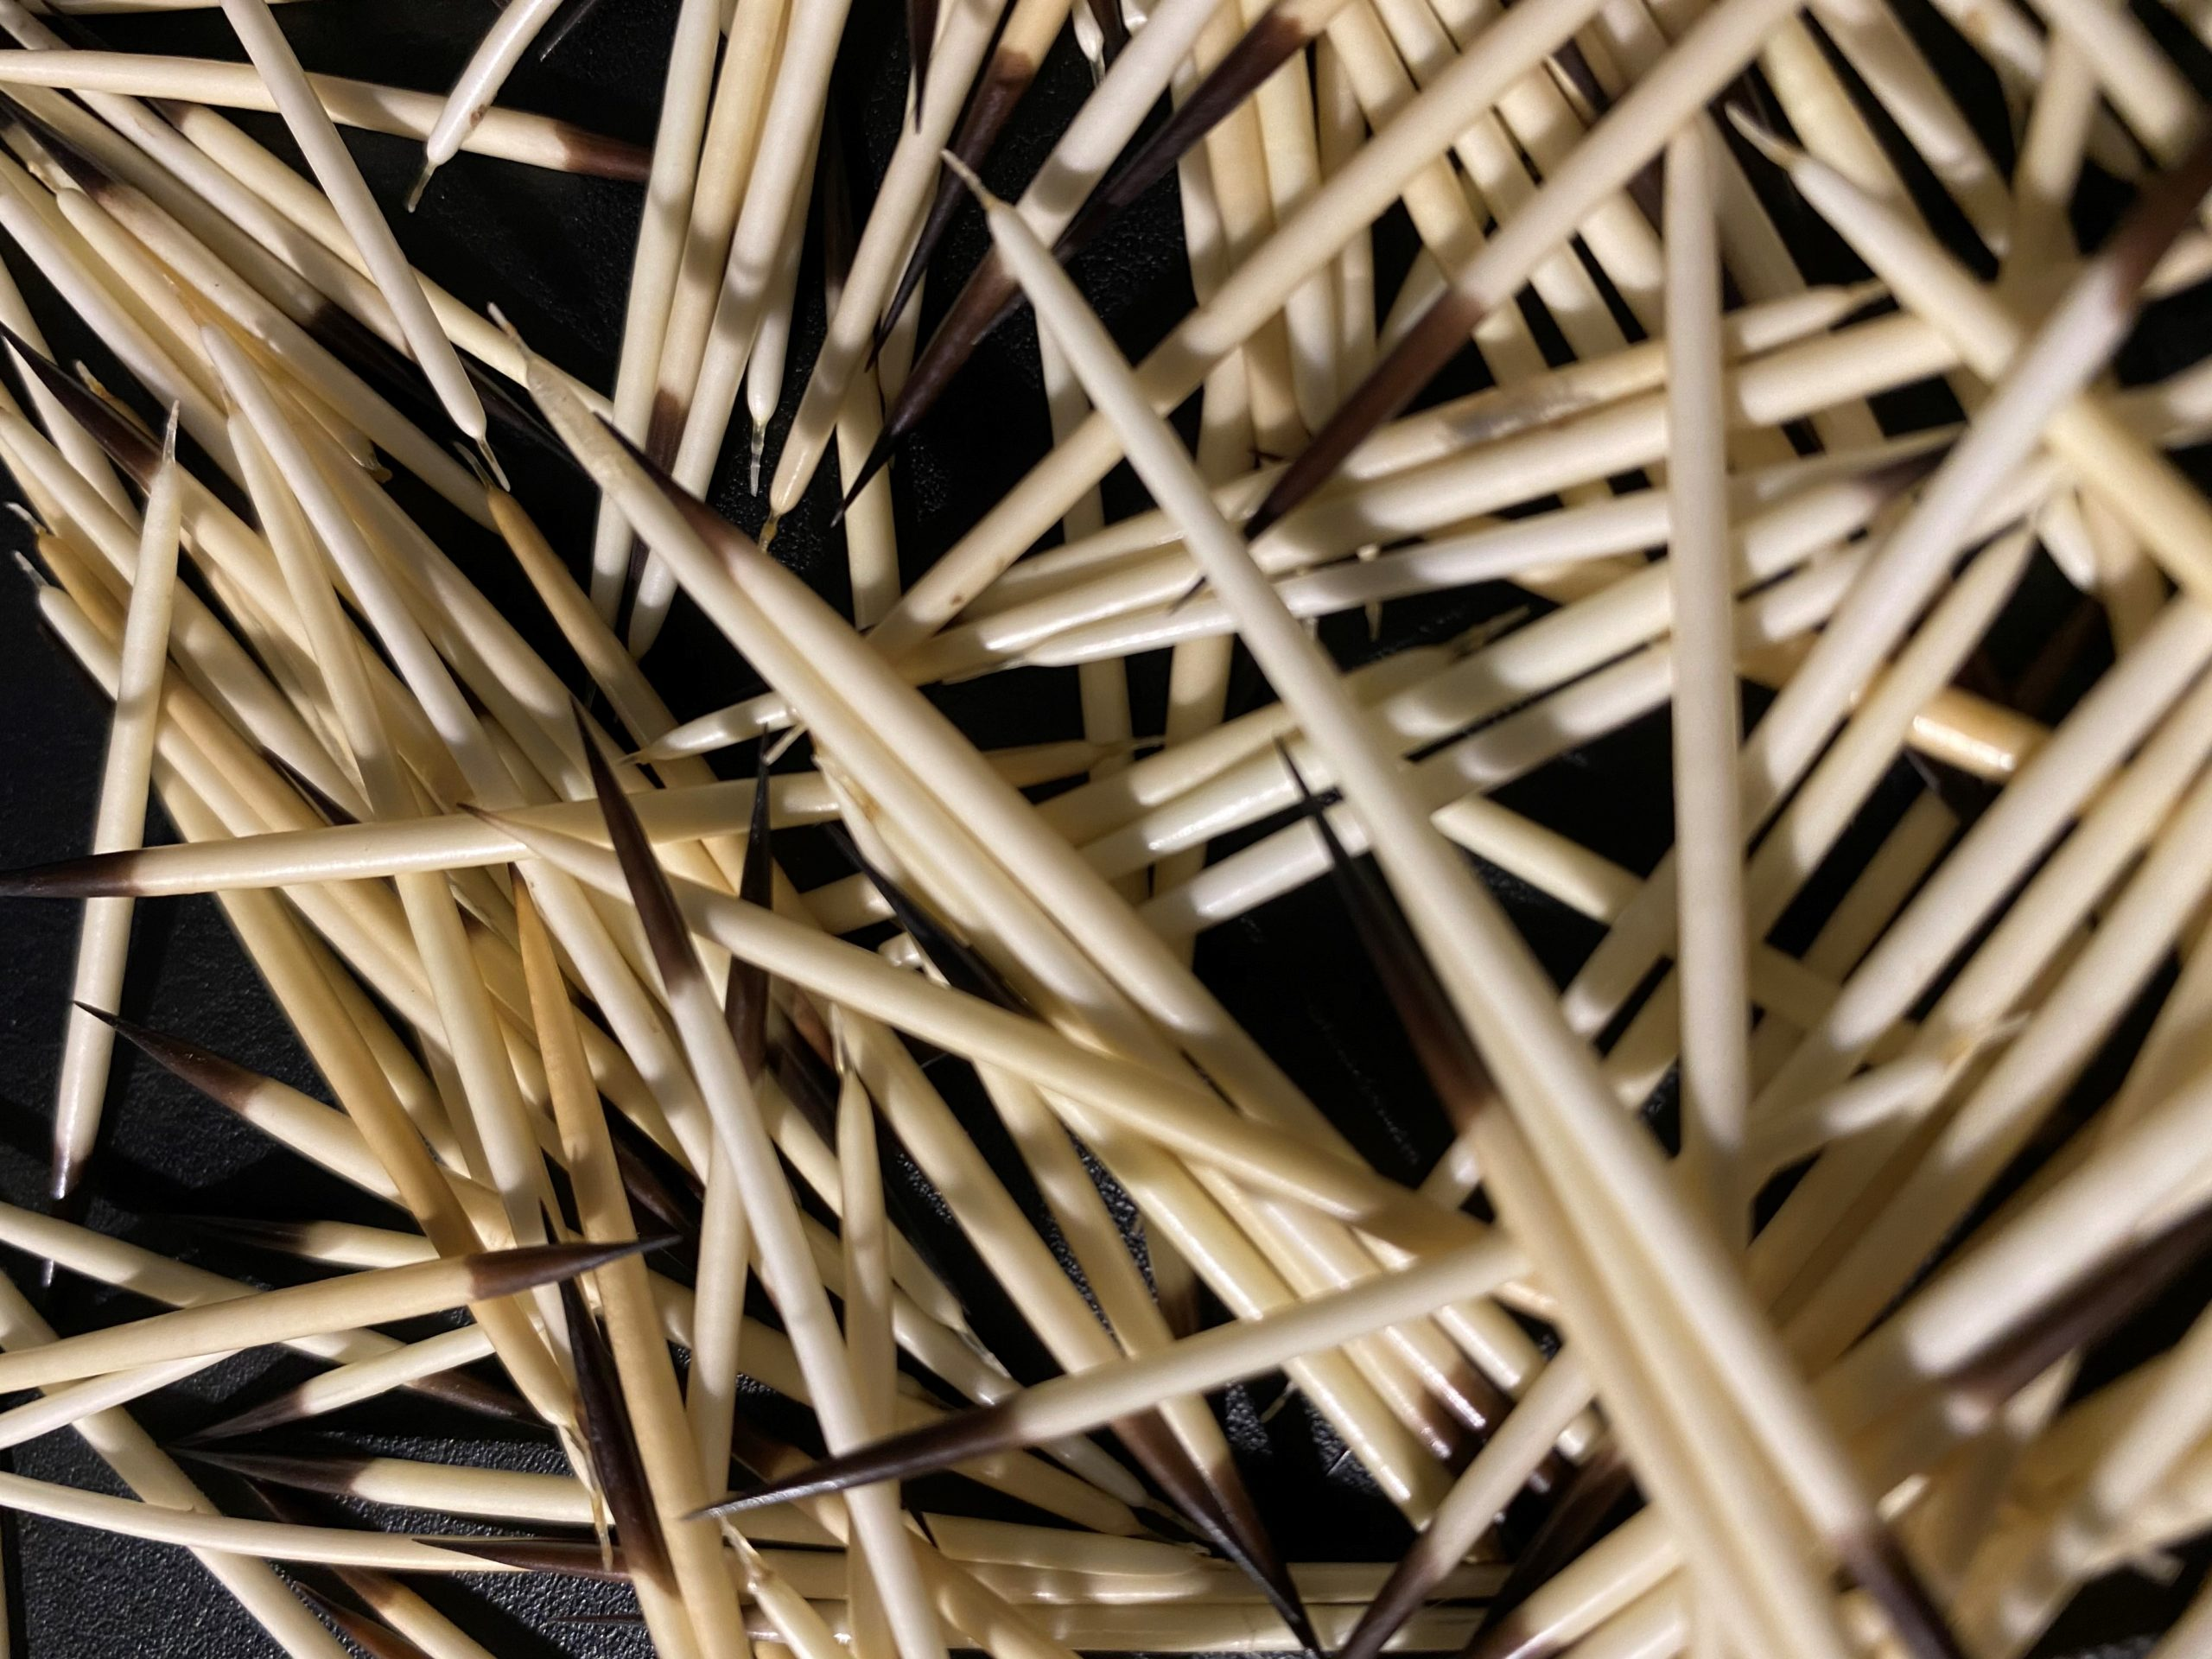 Close up image of porcupine quills